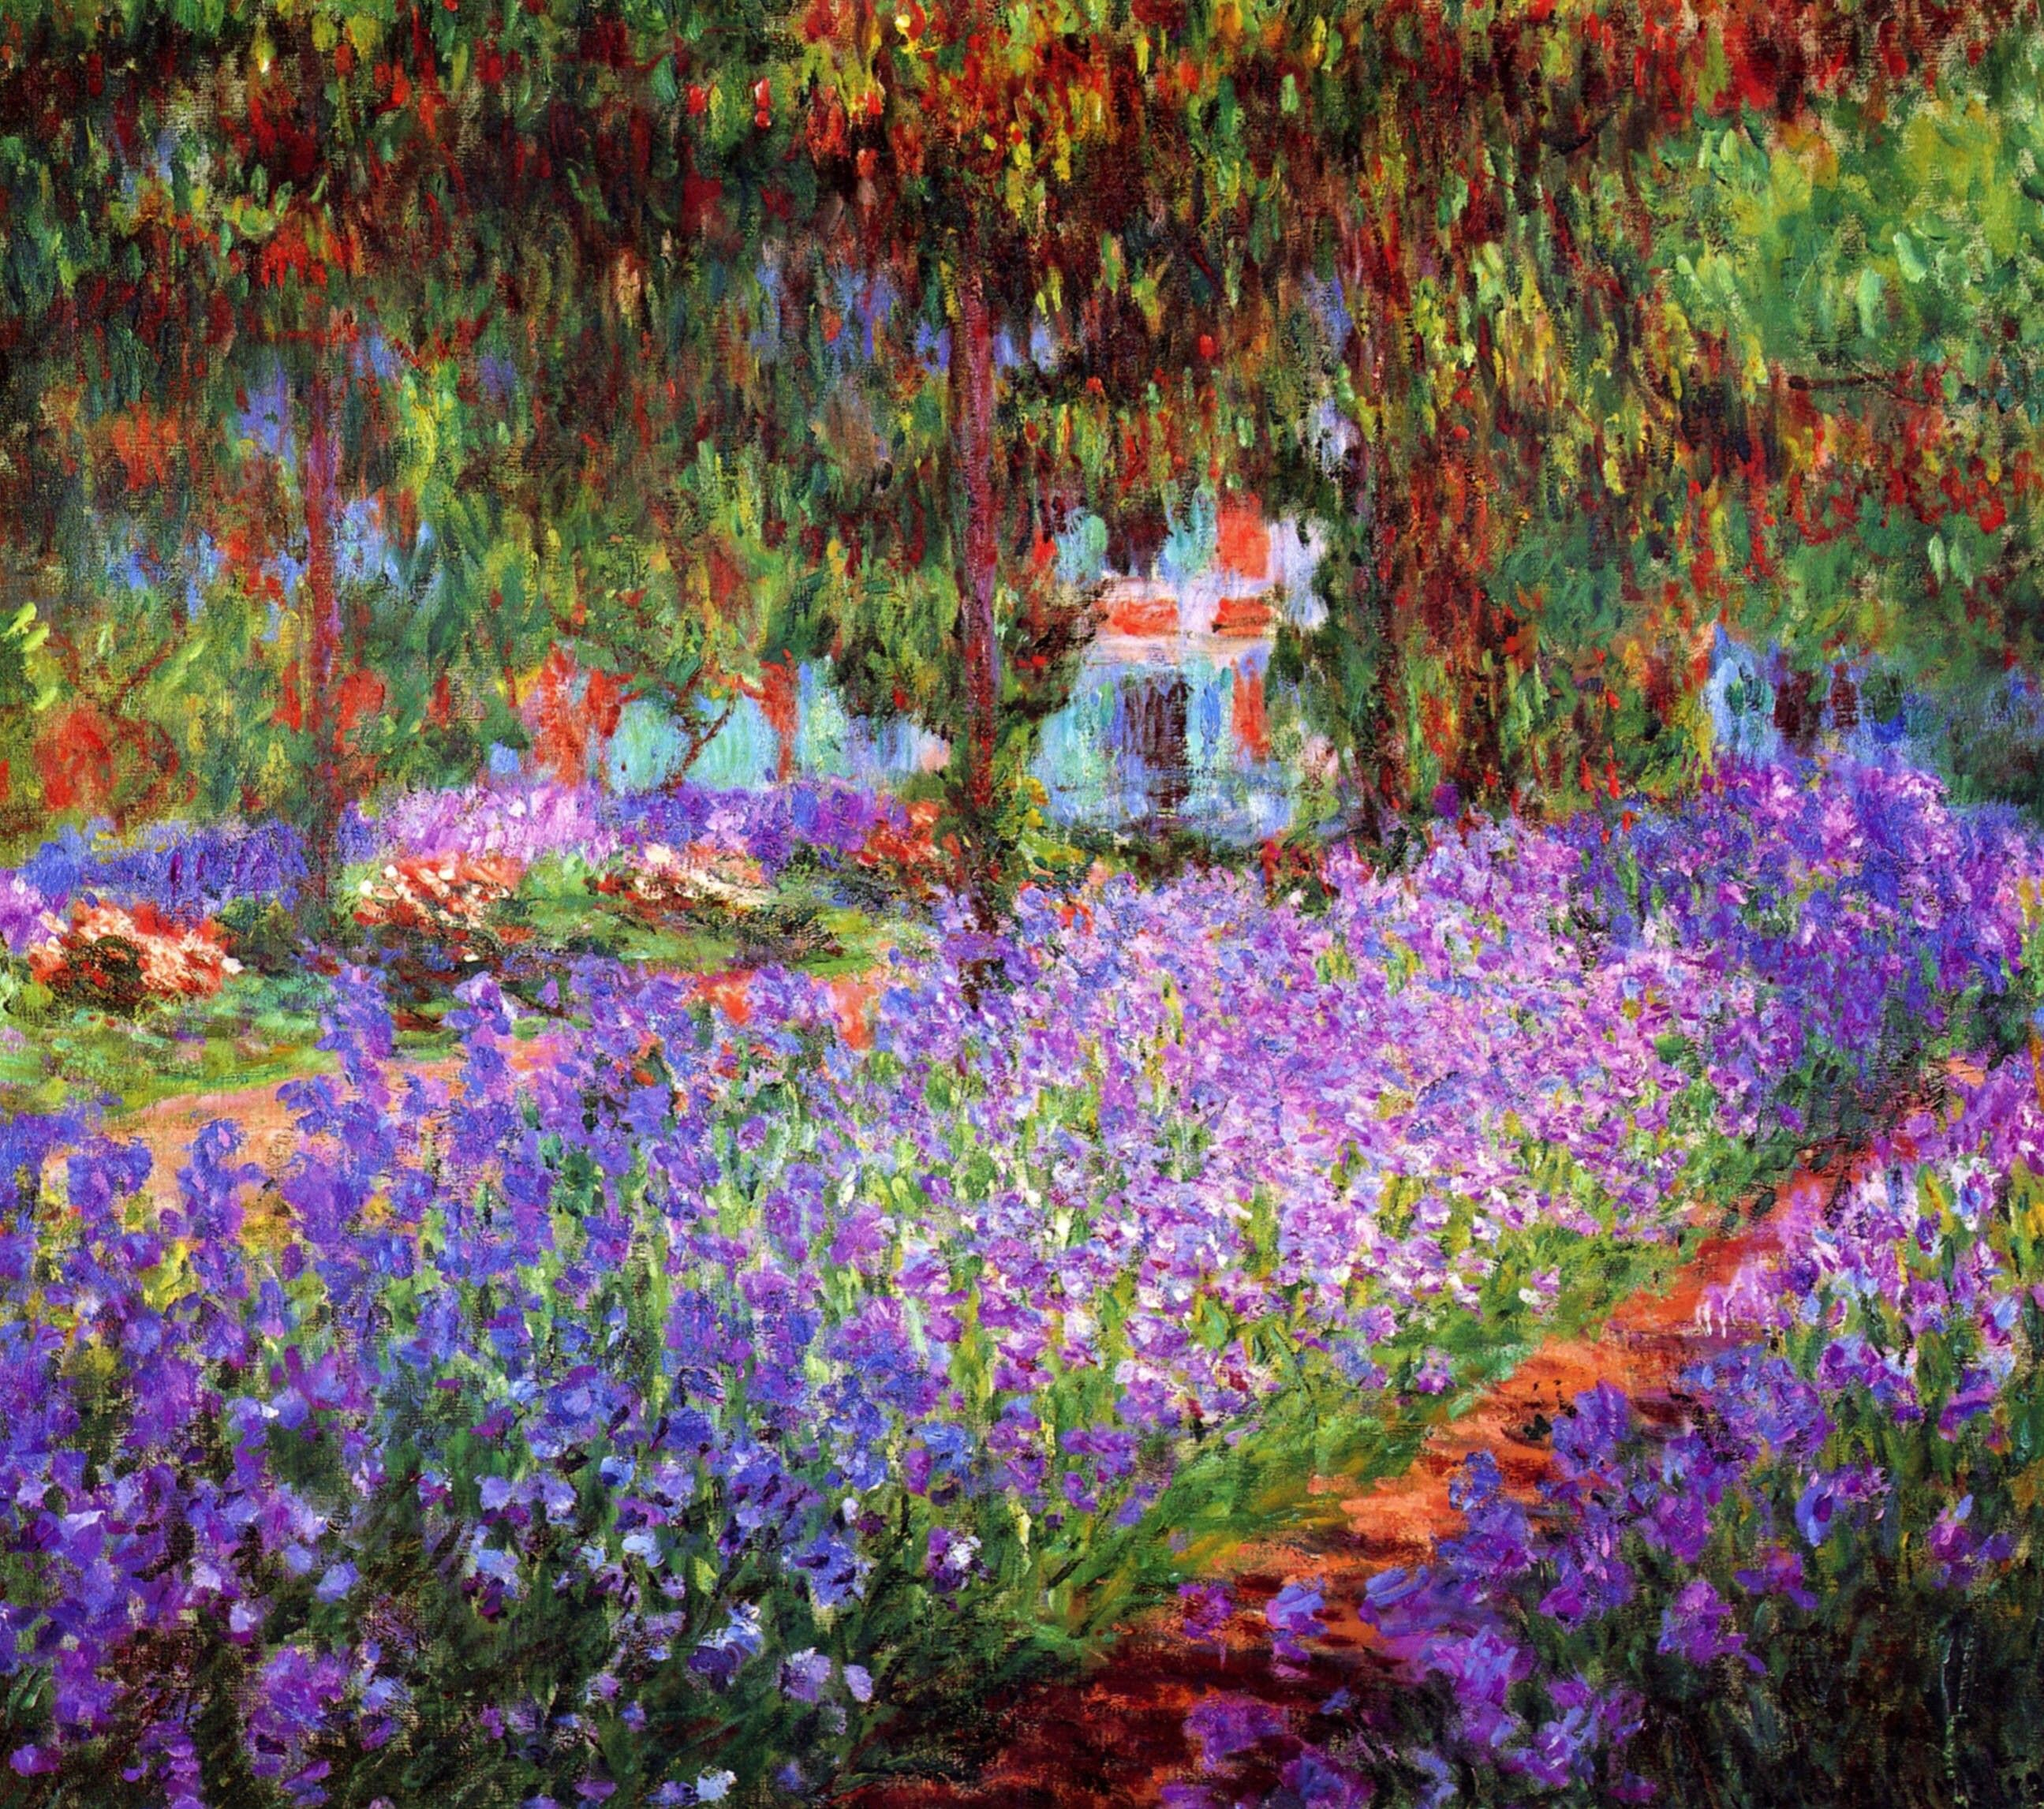 Monet The Artists Garden at Giverny Giclee Art Reproduction on